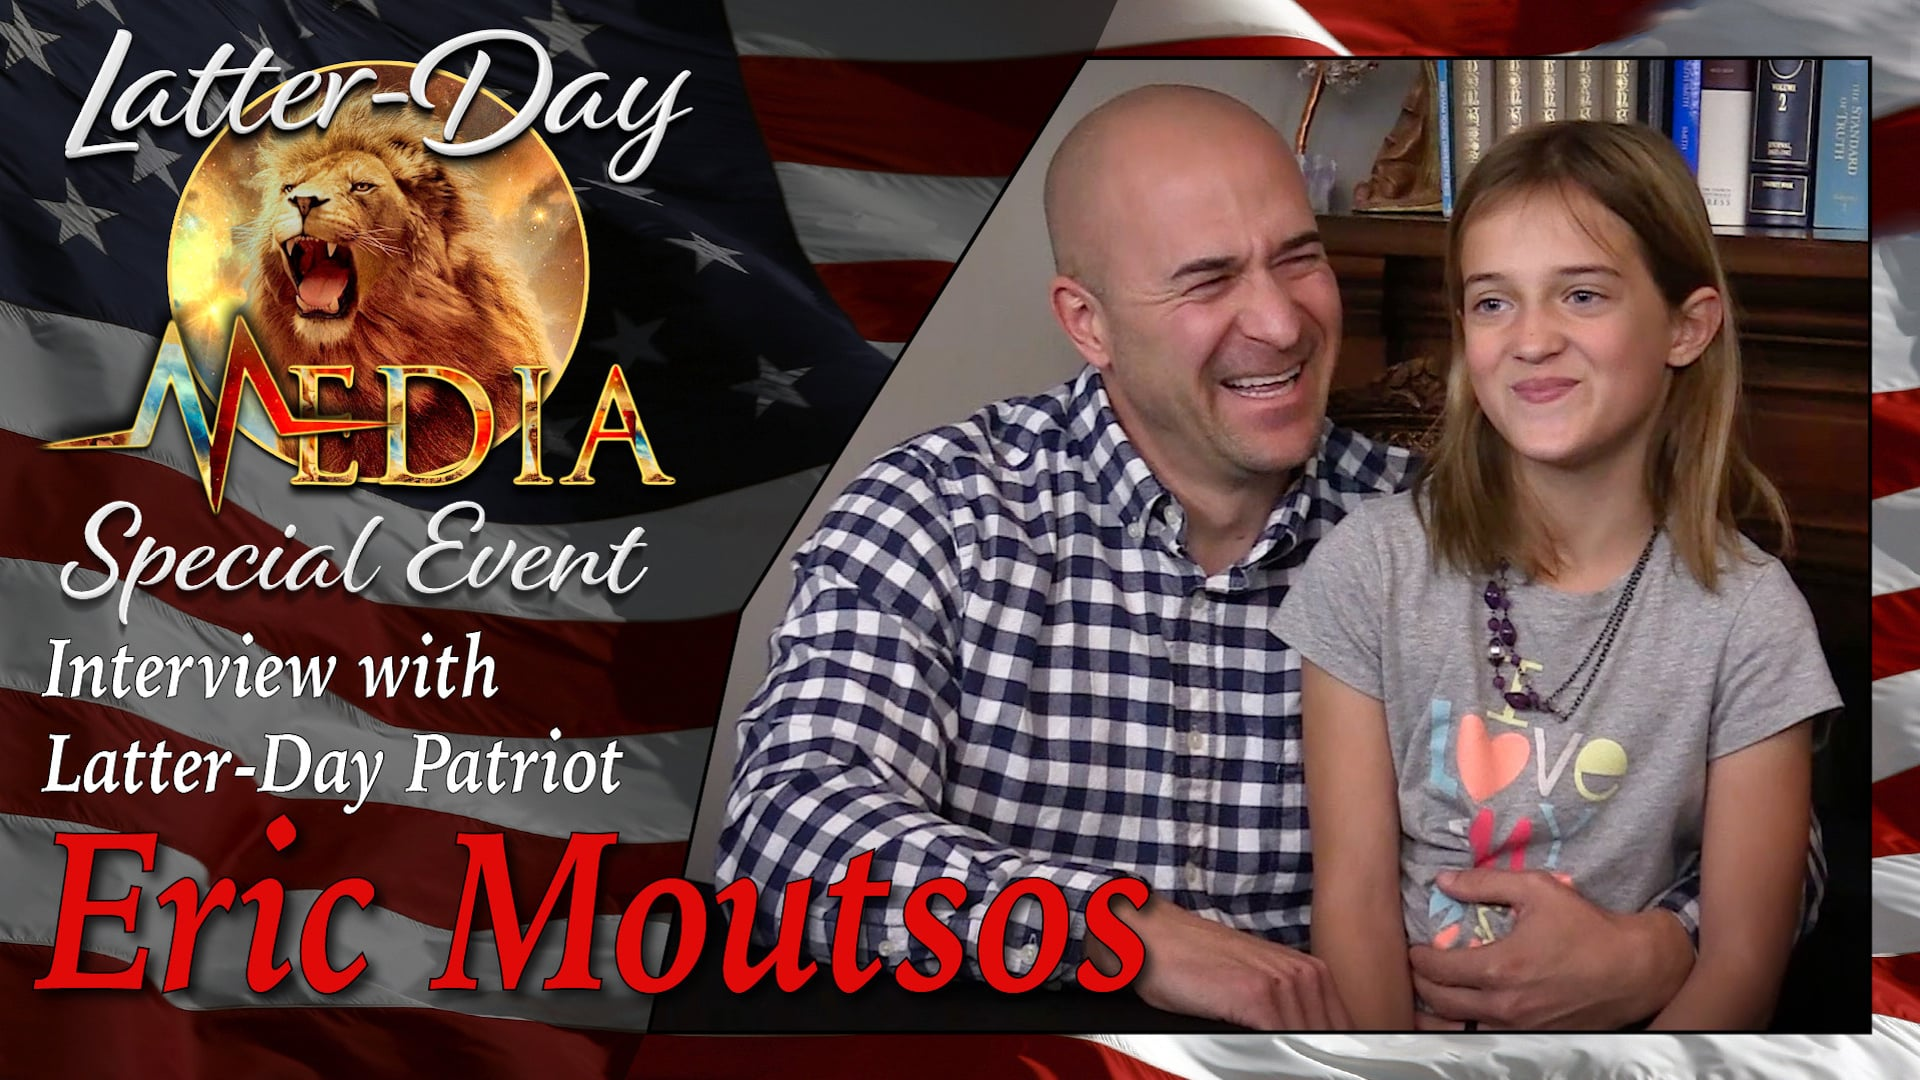 Latter-Day Media Special Event with Latter-Day Patriot, Eric Moutsos